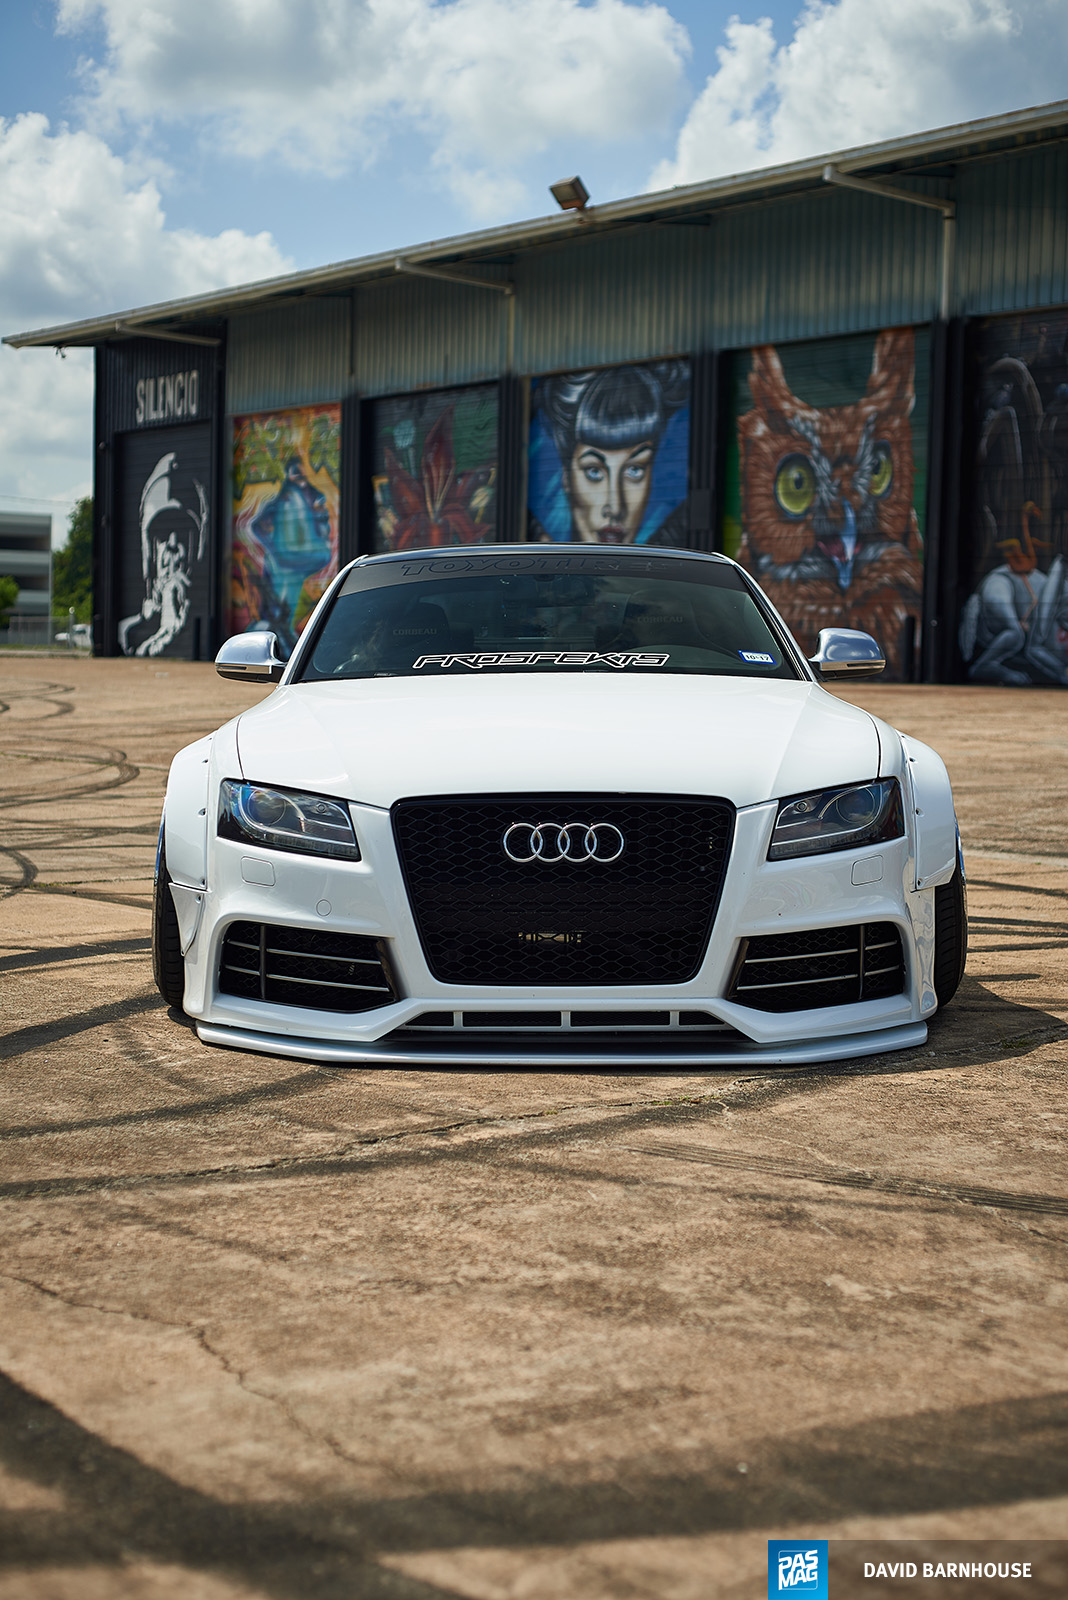 12 Thomas Ho 2009 Audi S5 pasmag builds to follow